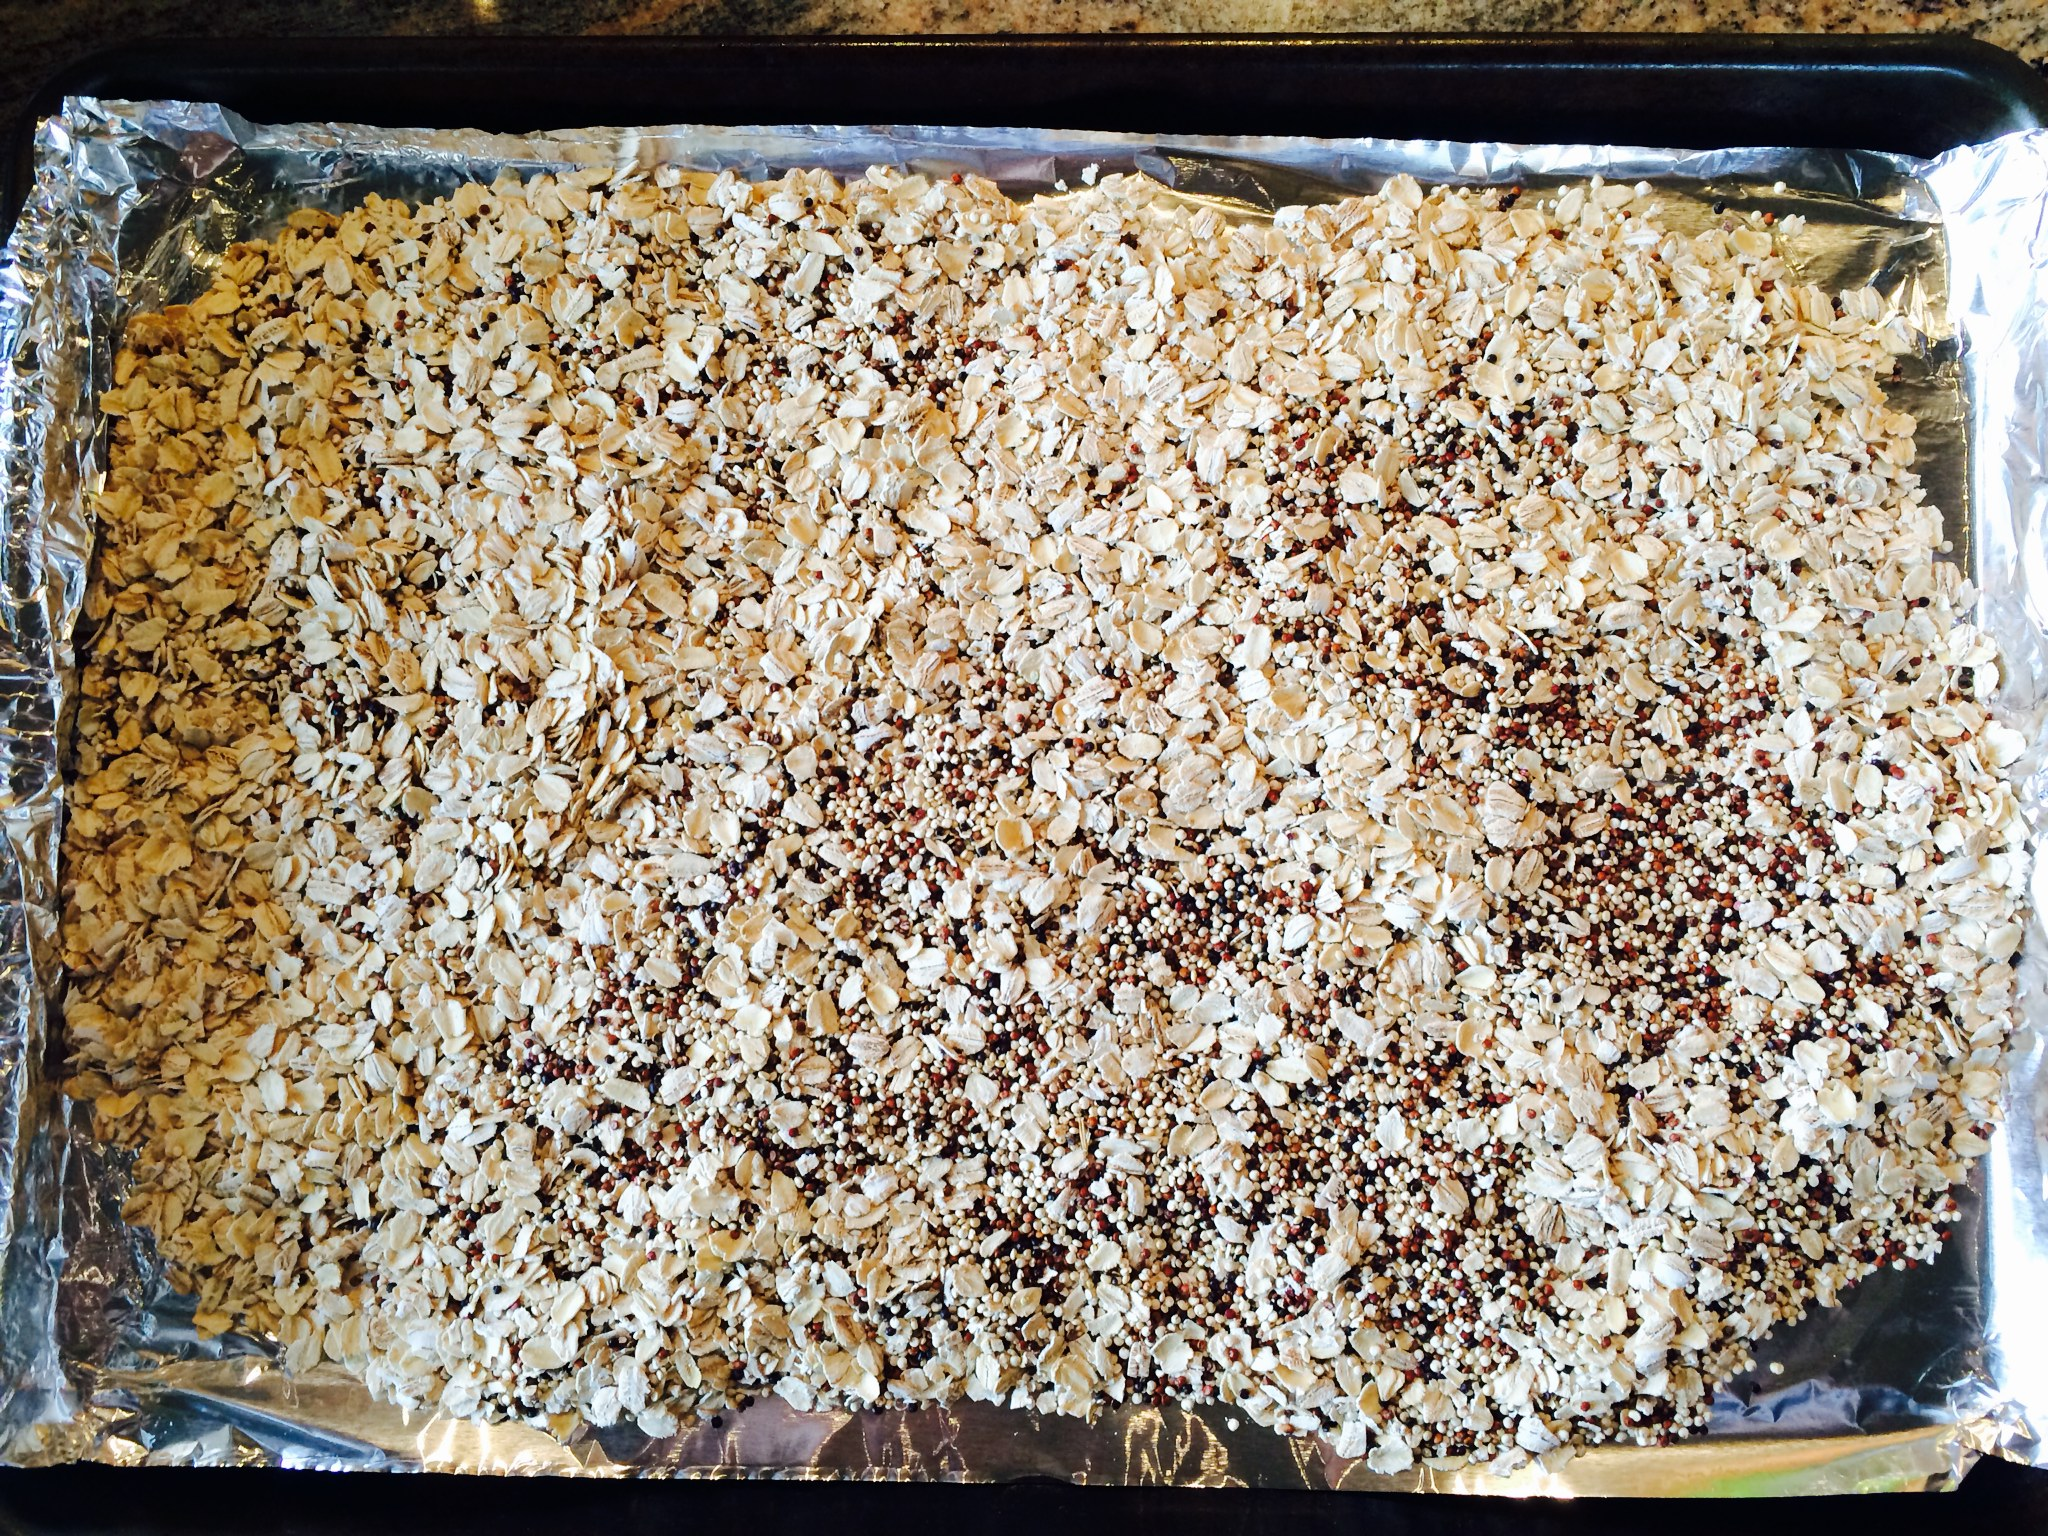 Energy bar recipe recipe oats and quinoa asweatlife fabfitchicago